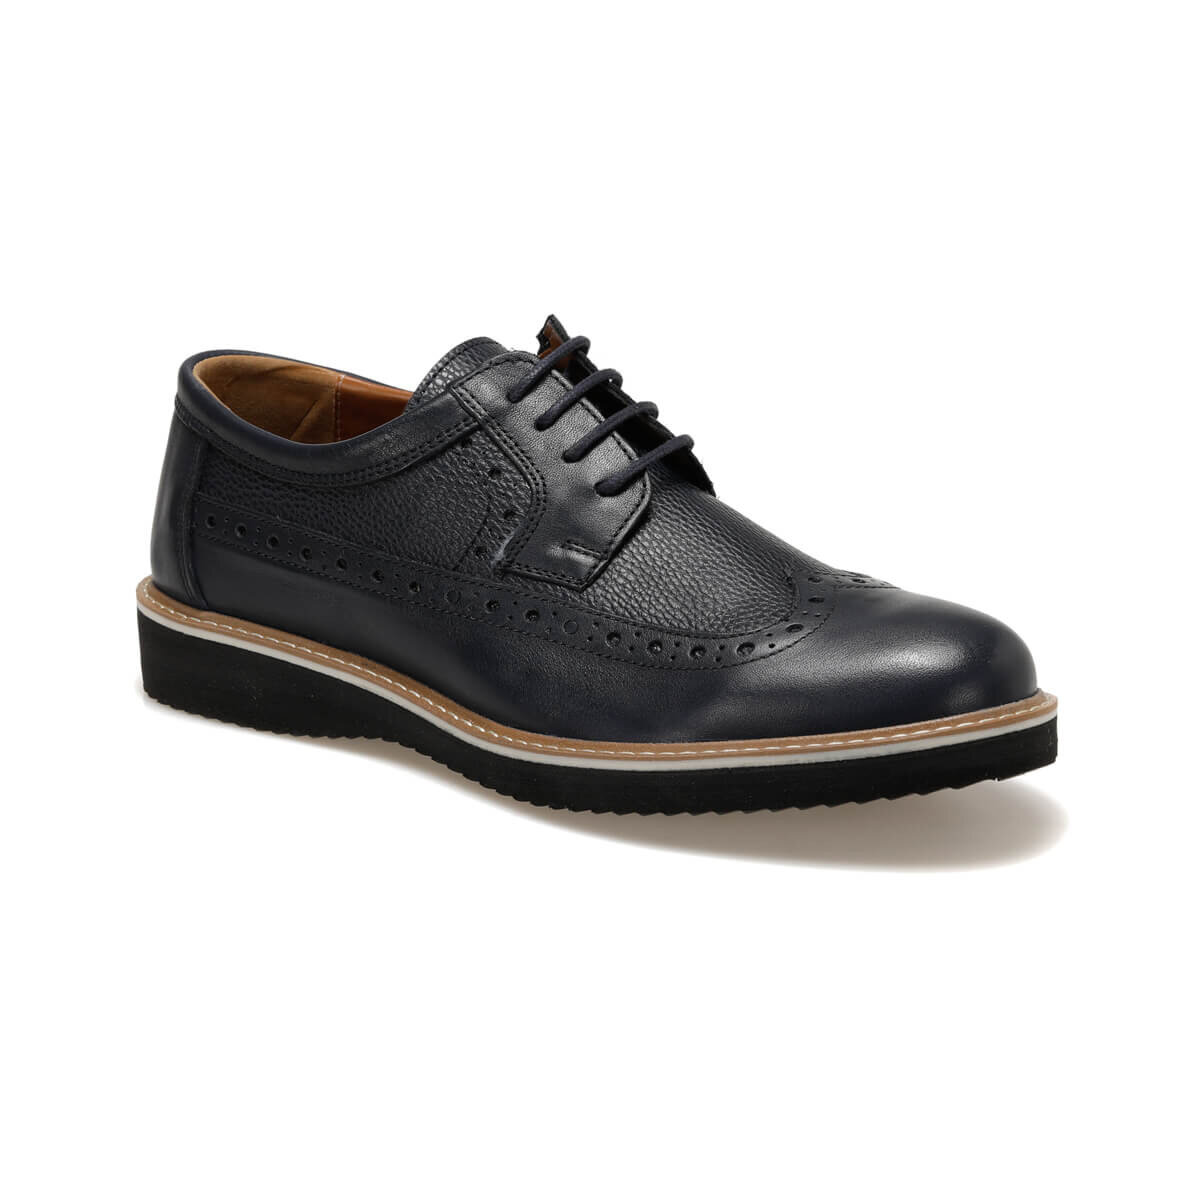 FLO 1315 Navy Blue Men 'S Classic Shoes Garamond